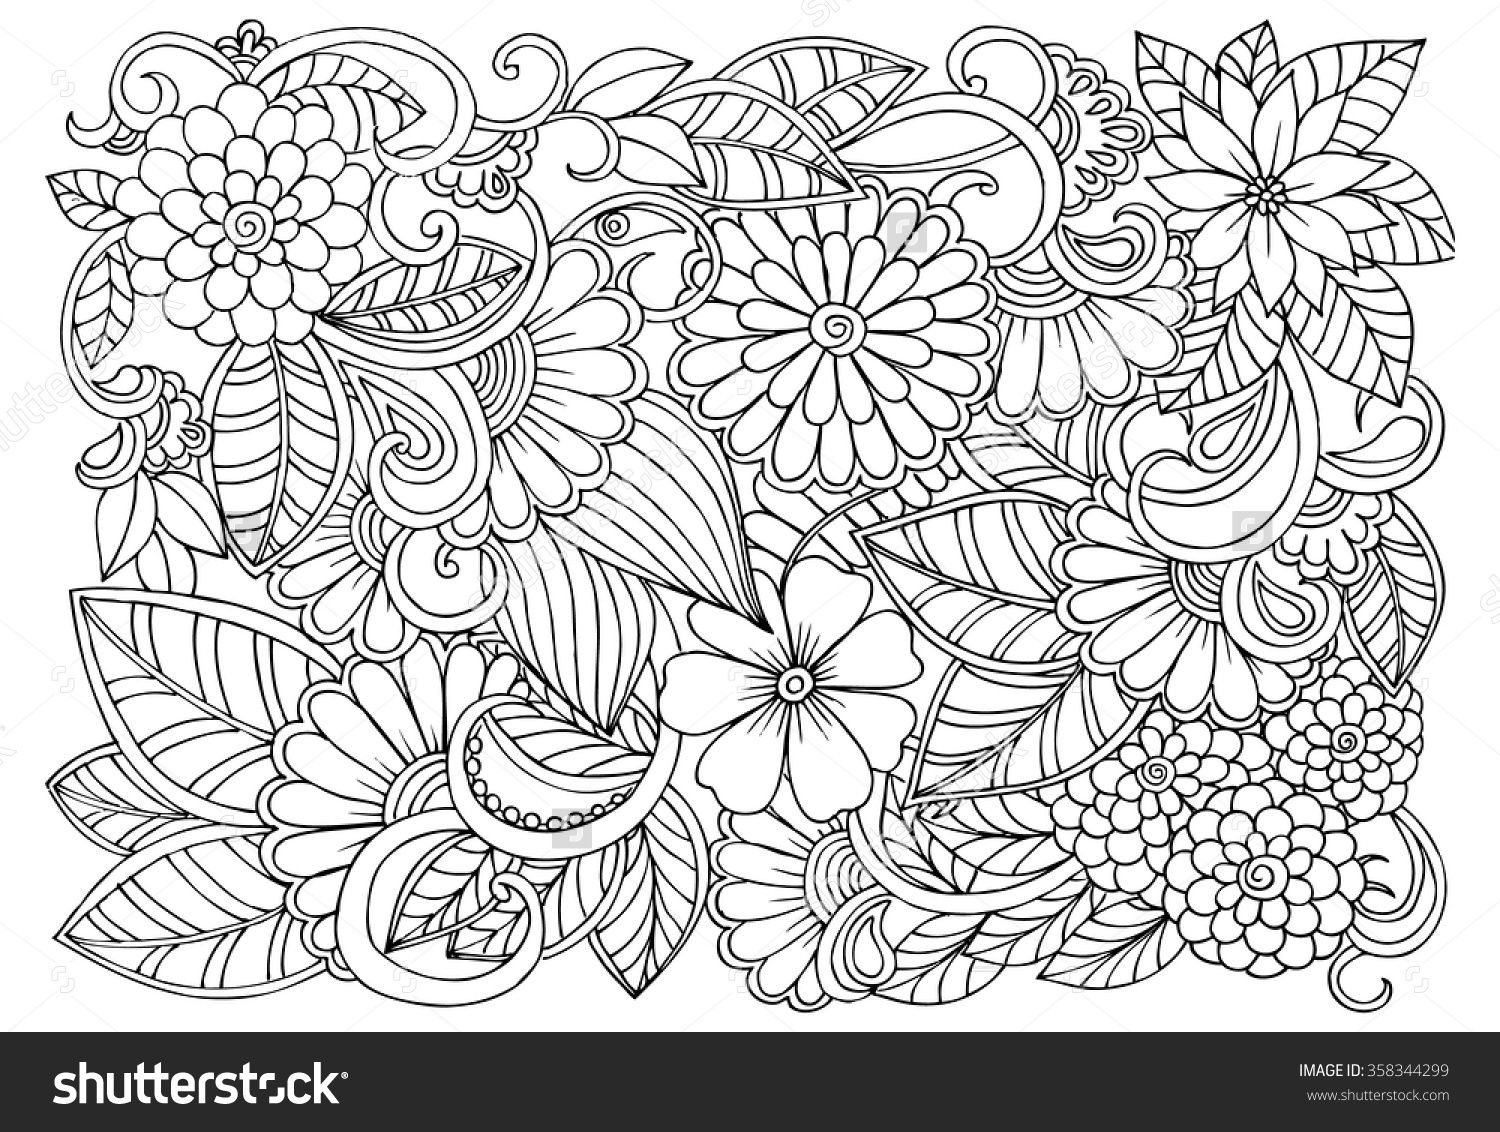 Pinterest Best Patterns Google Search Pattern Coloring Pages Flower Coloring Pages Relaxing Coloring Book